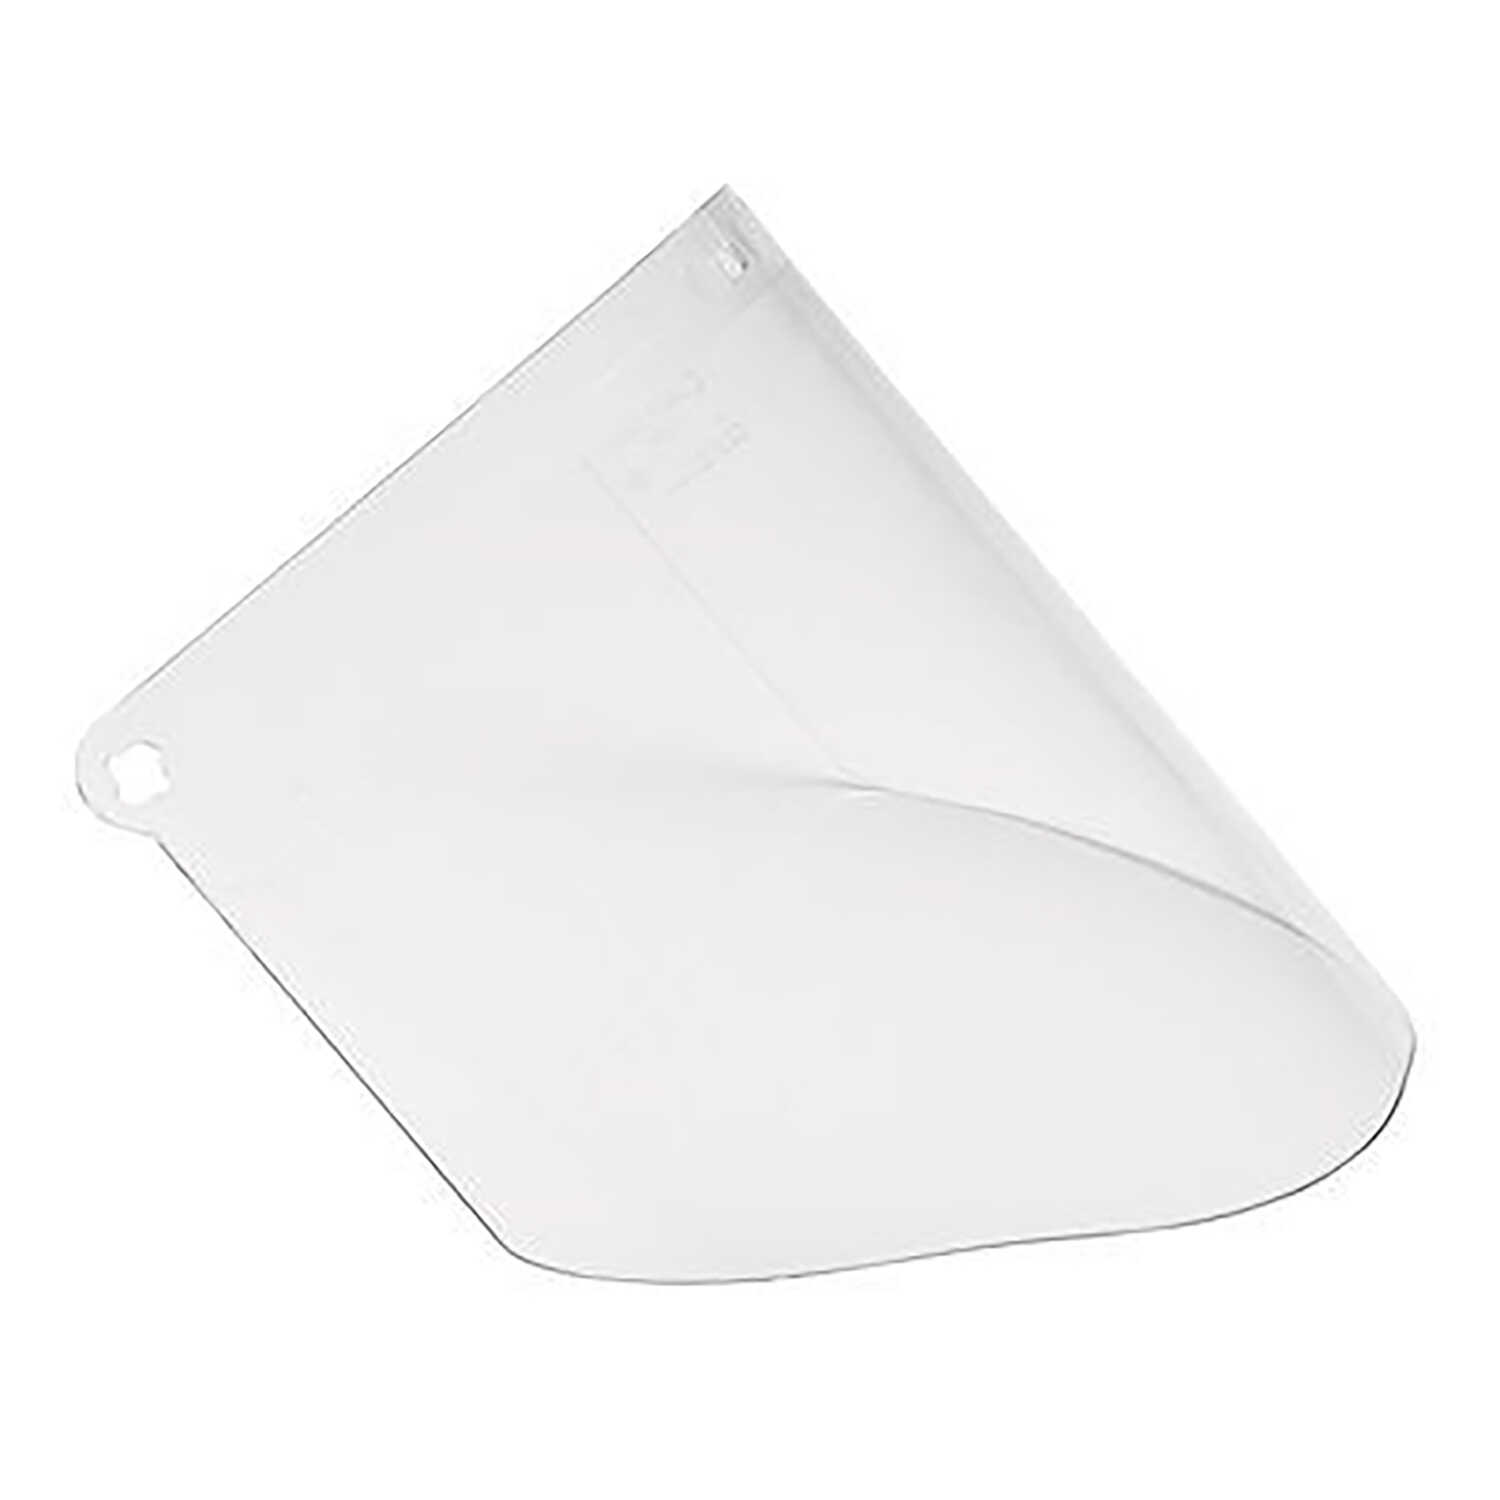 3M  Polycarbonate  Safety Face Shield  Clear  1 pk